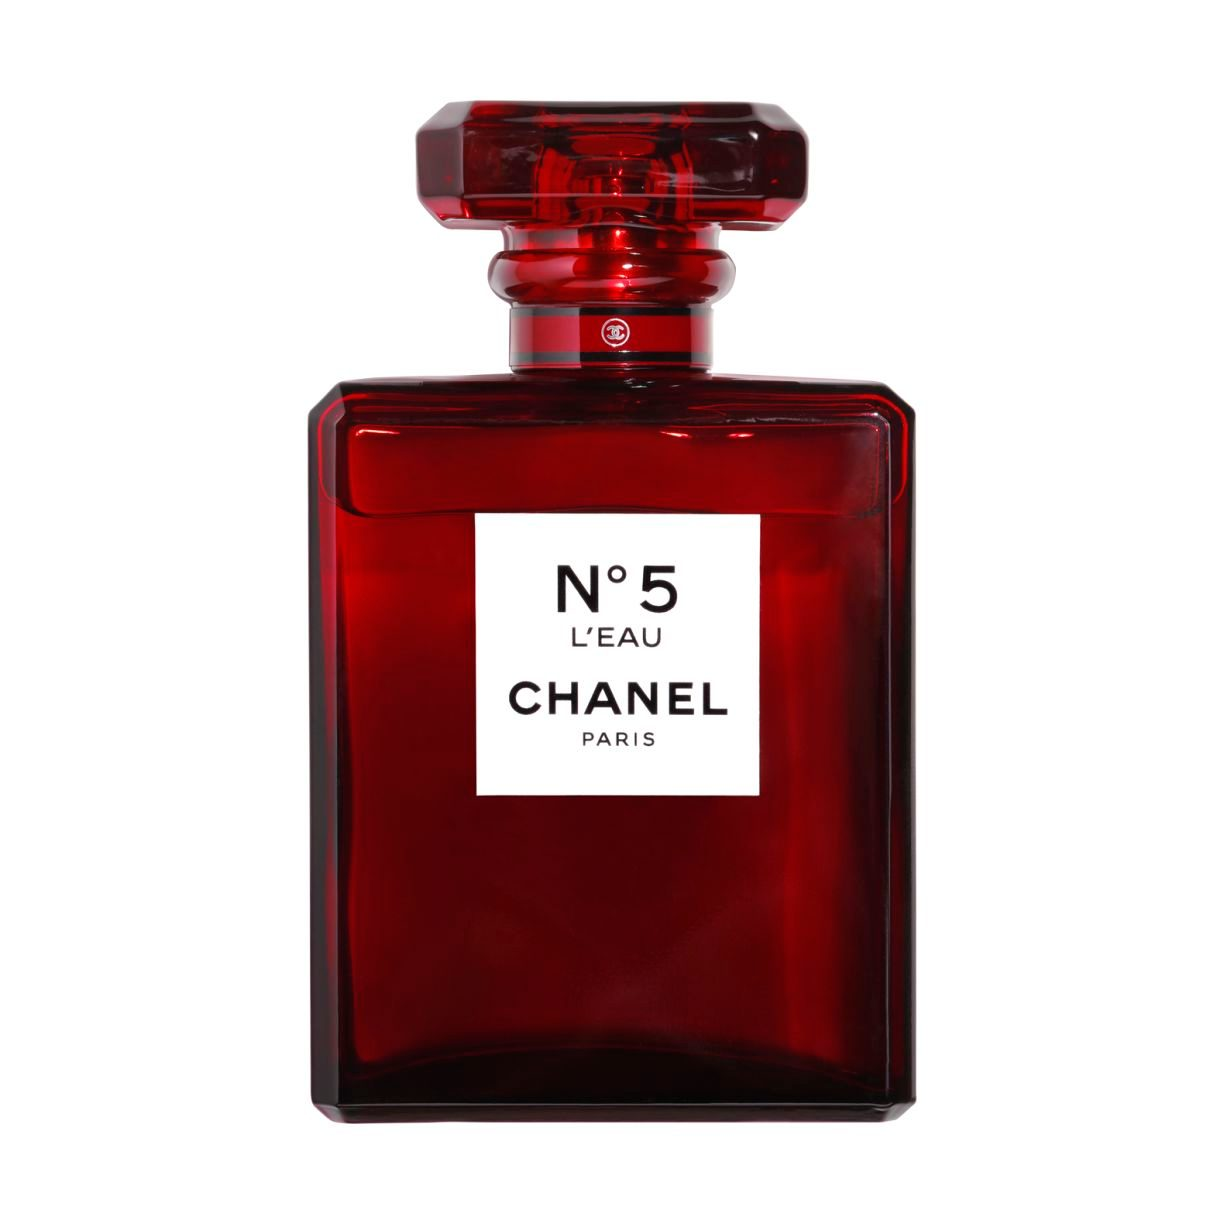 N°5 EAU DE TOILETTE LIMITED EDITION 100ML